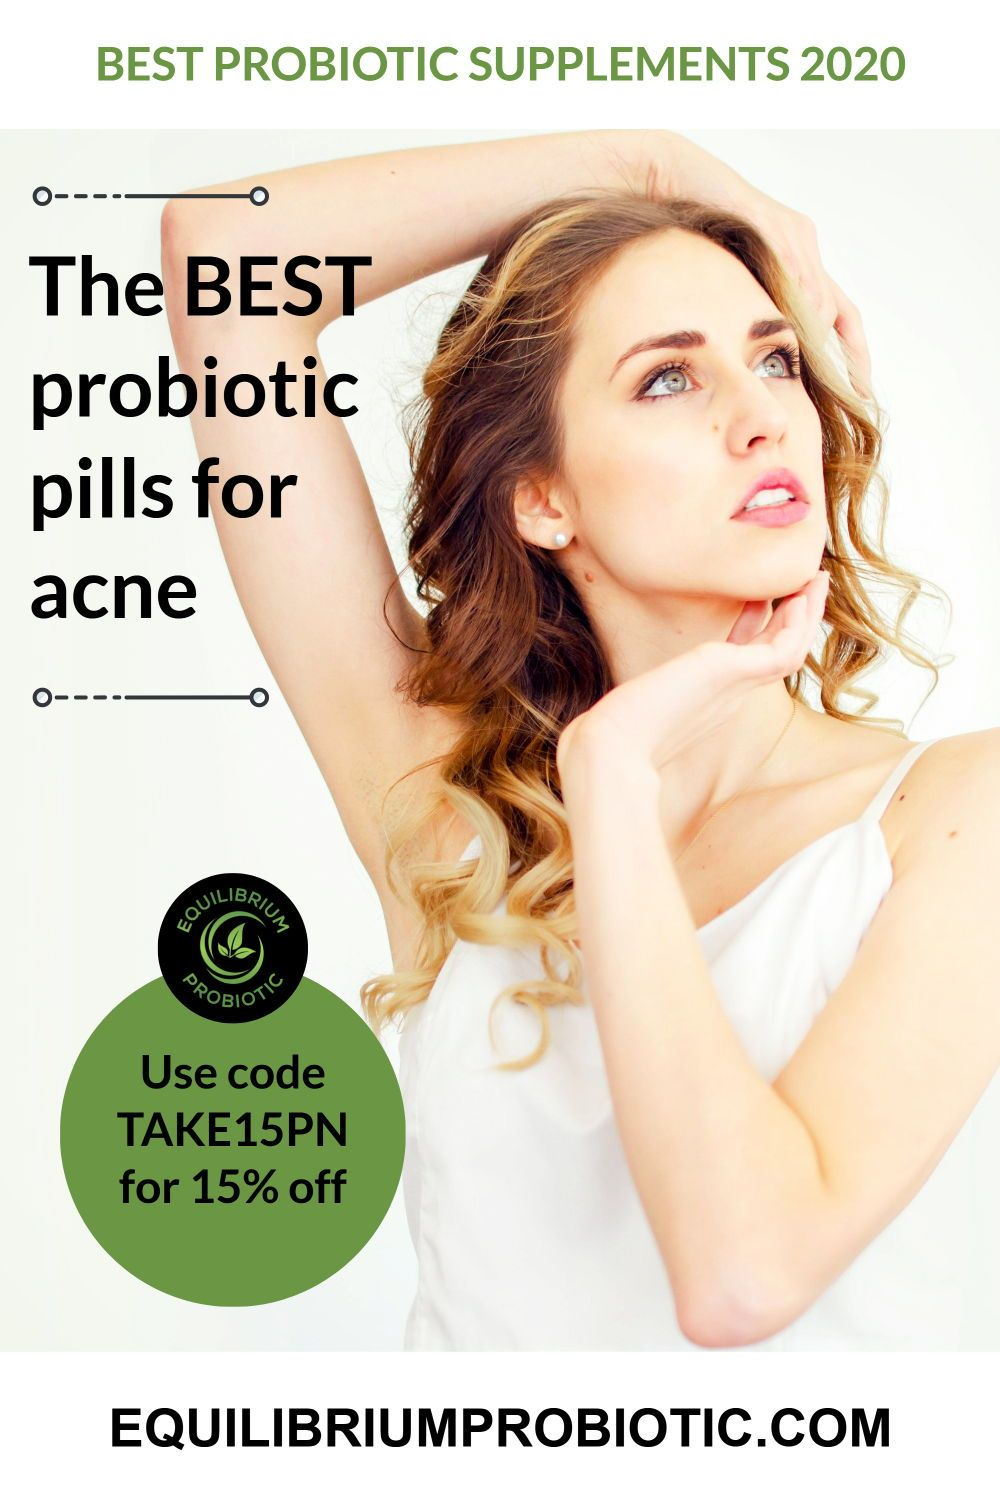 The Best Probiotic Pills For Acne. Taking A Probiotic